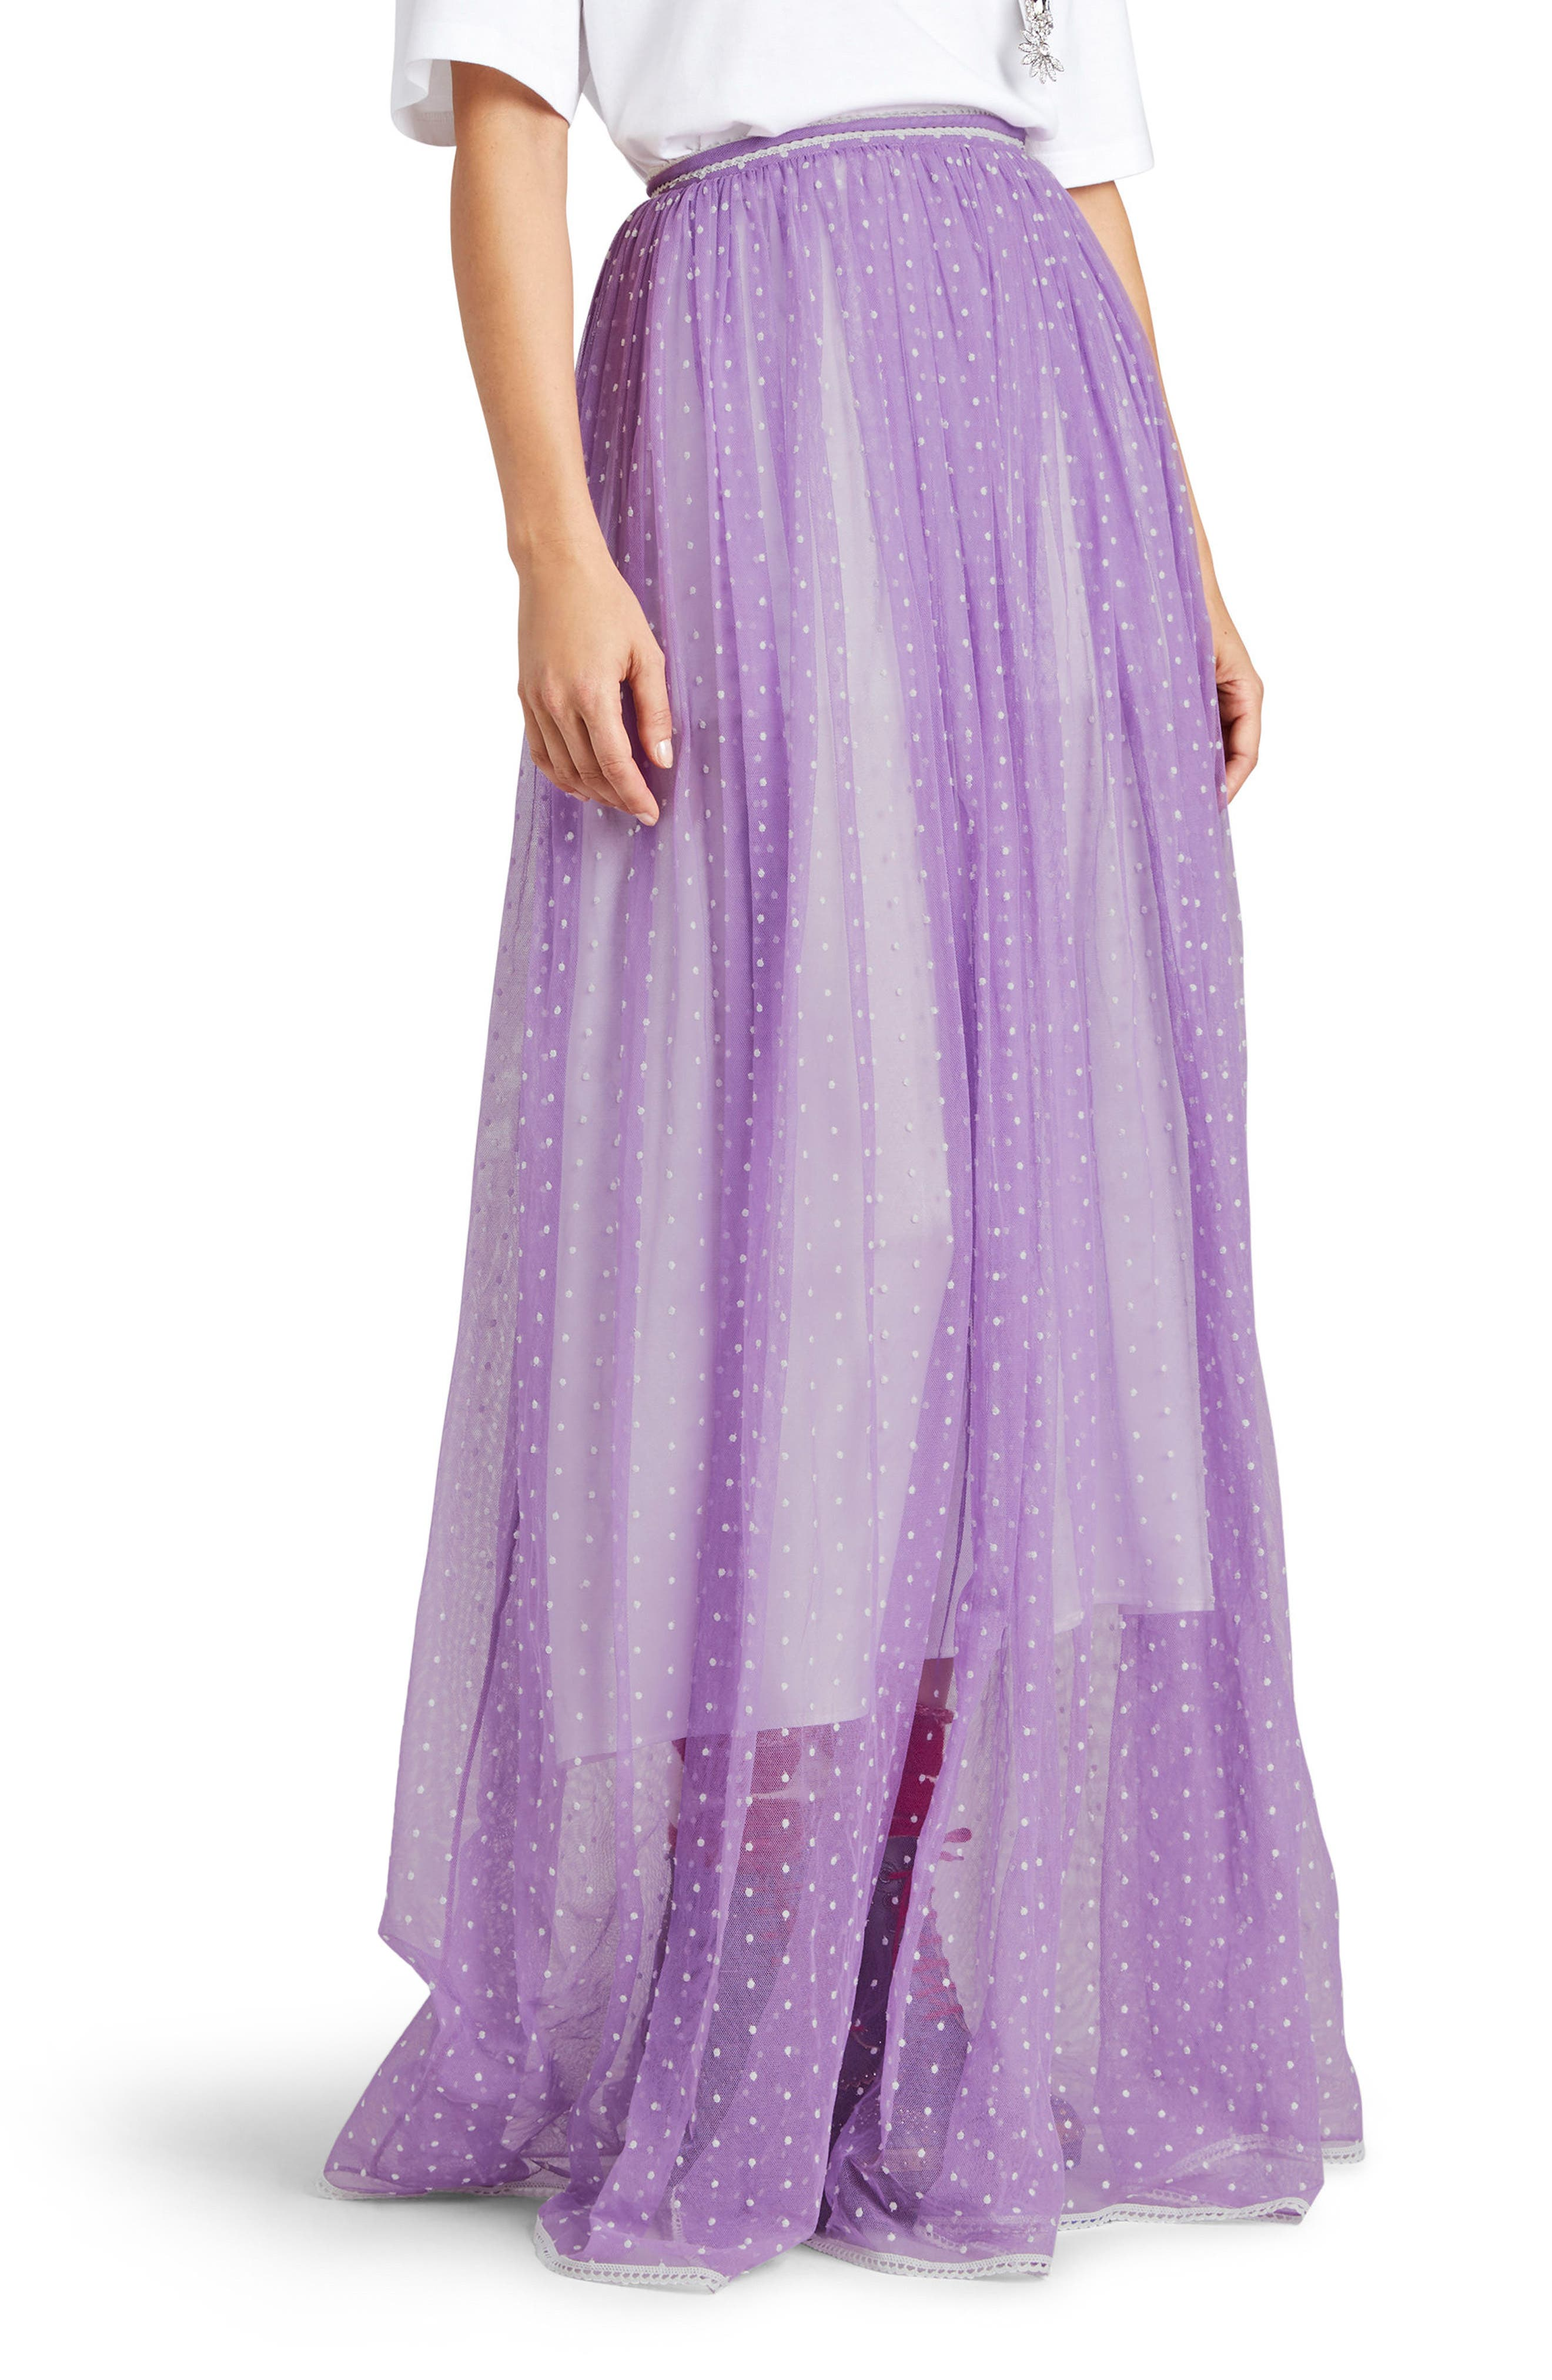 Flocked Tulle Maxi Skirt,                         Main,                         color, 520